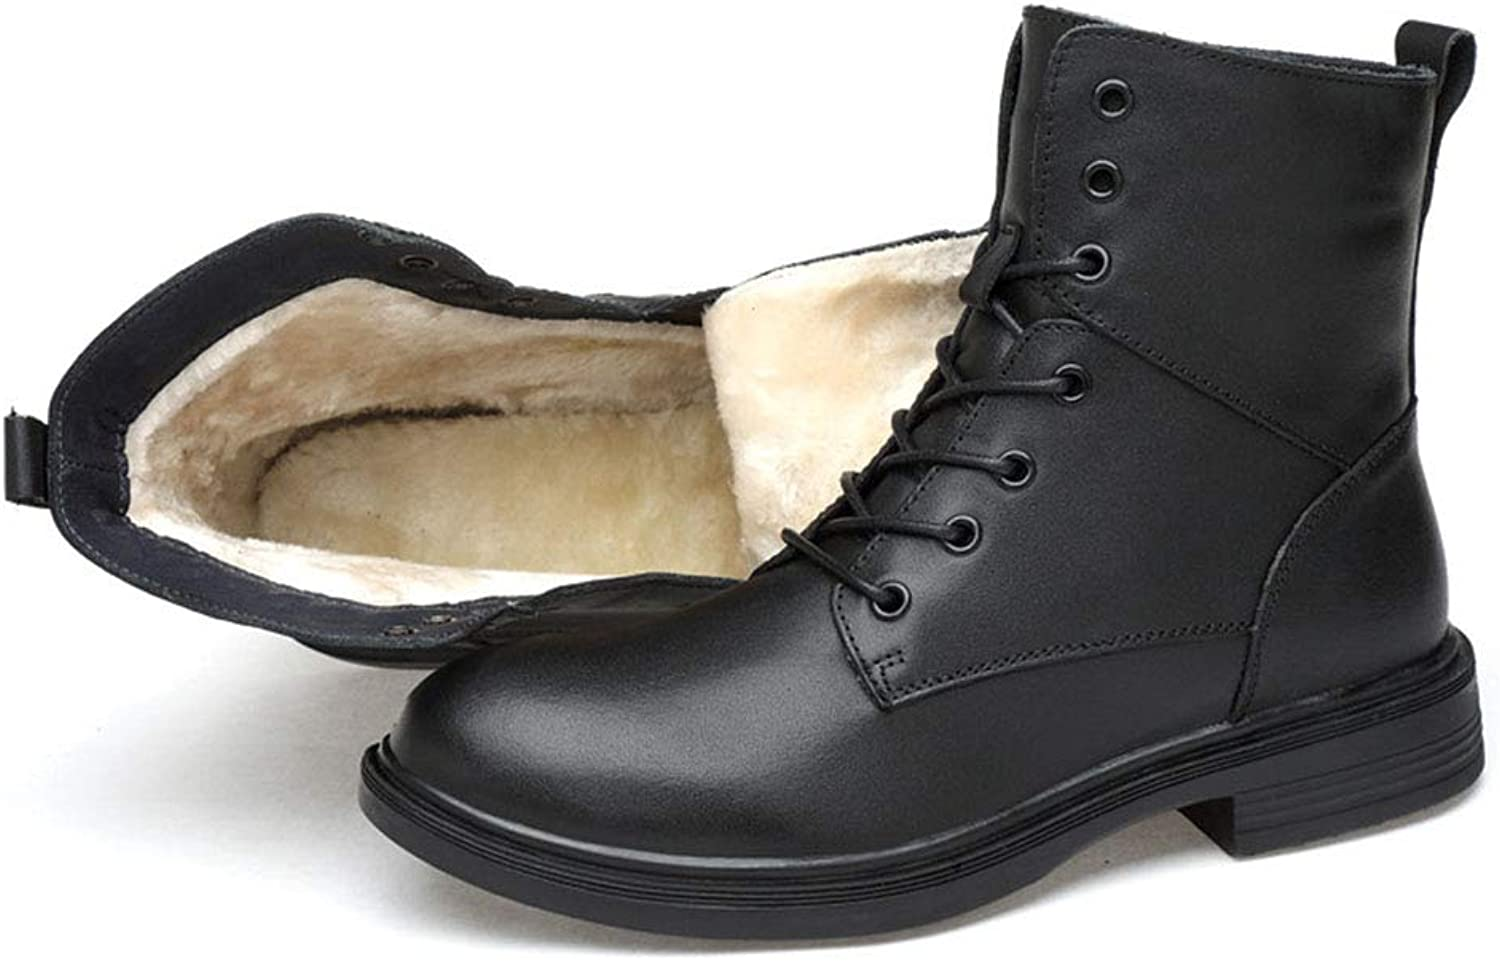 Men's Boots, Business Cotton Boots Warm Leather Boots Winter High-Top Leather Martin Boots Lace-Up Booties,B,38